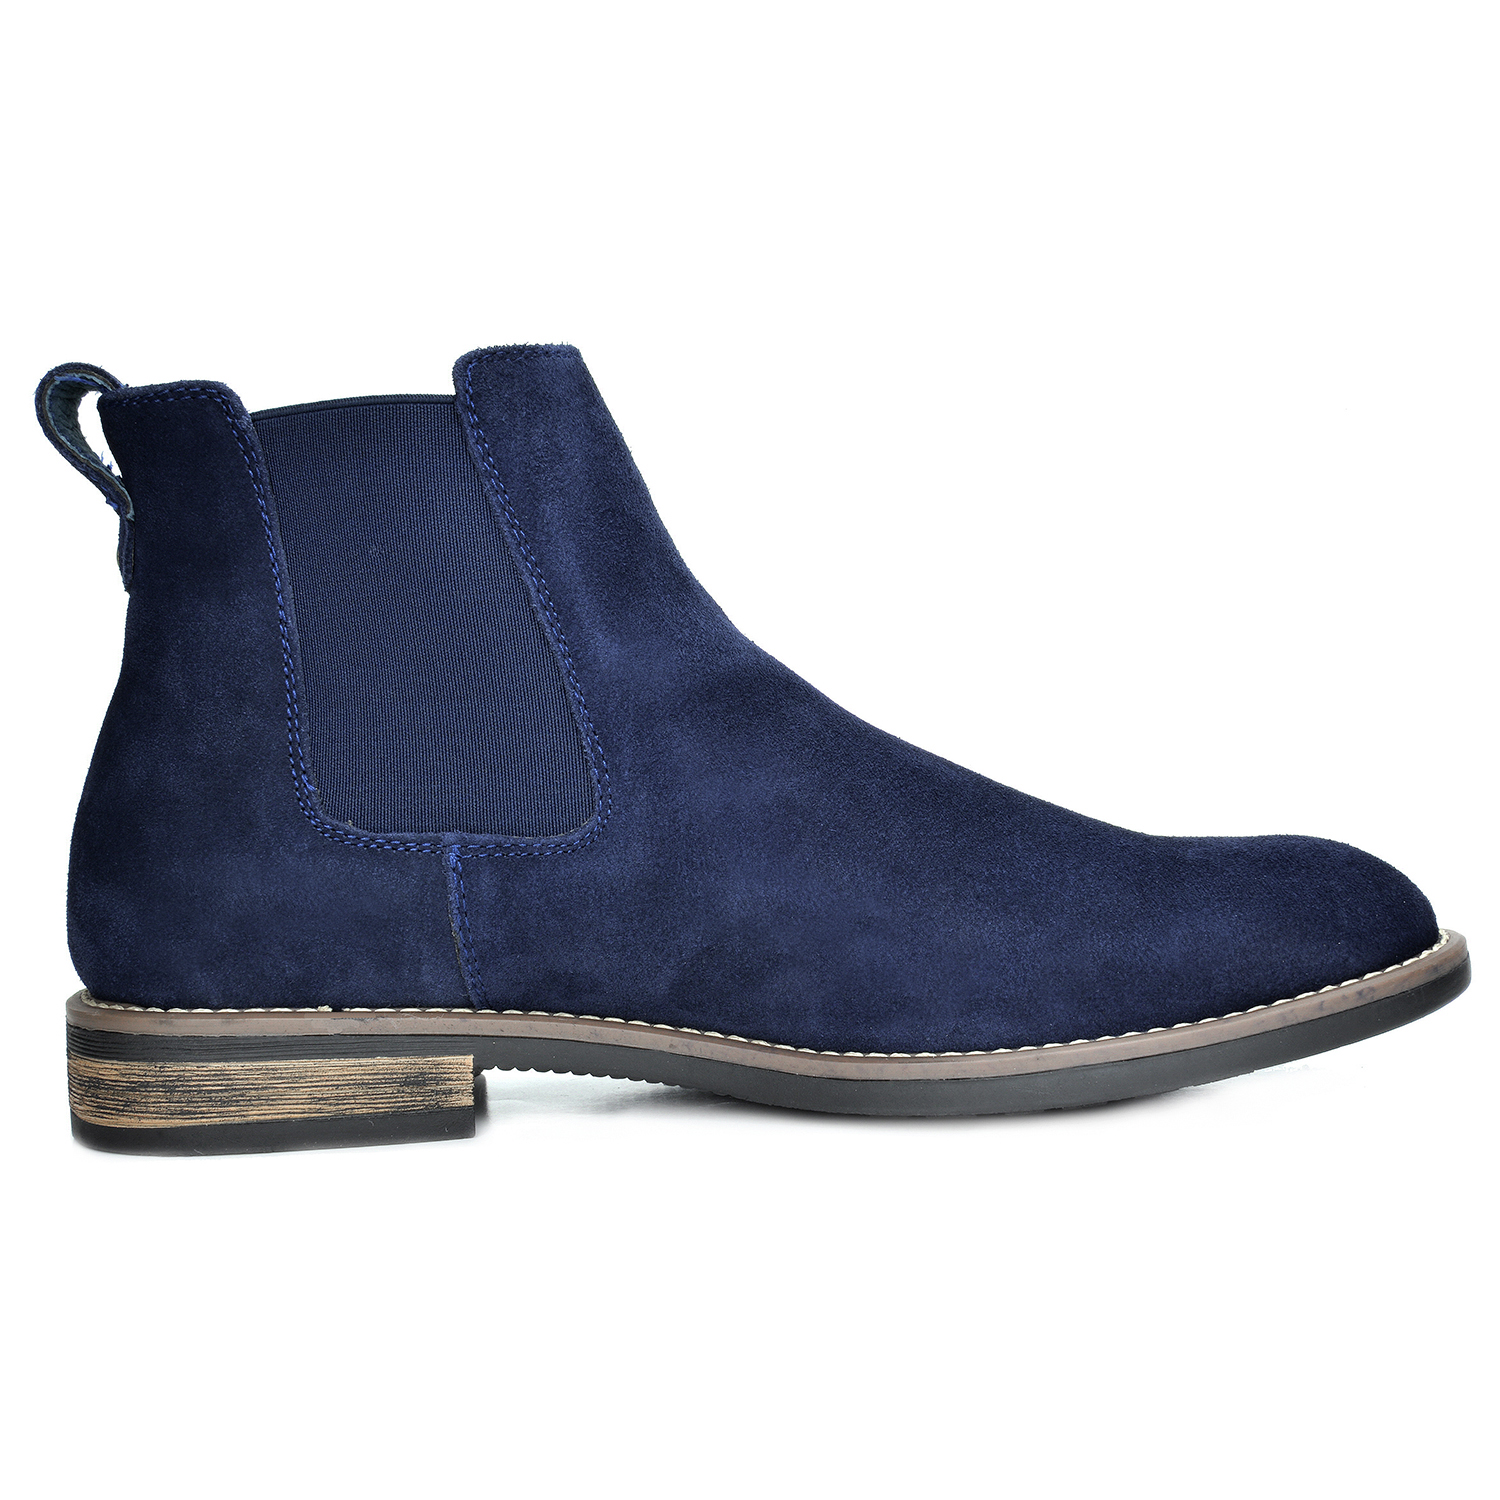 BRUNO-MARC-Men-URBAN-Suede-Leather-Chelsea-Chukka-Dress-Ankle-Boots-Casual-Shoes thumbnail 37